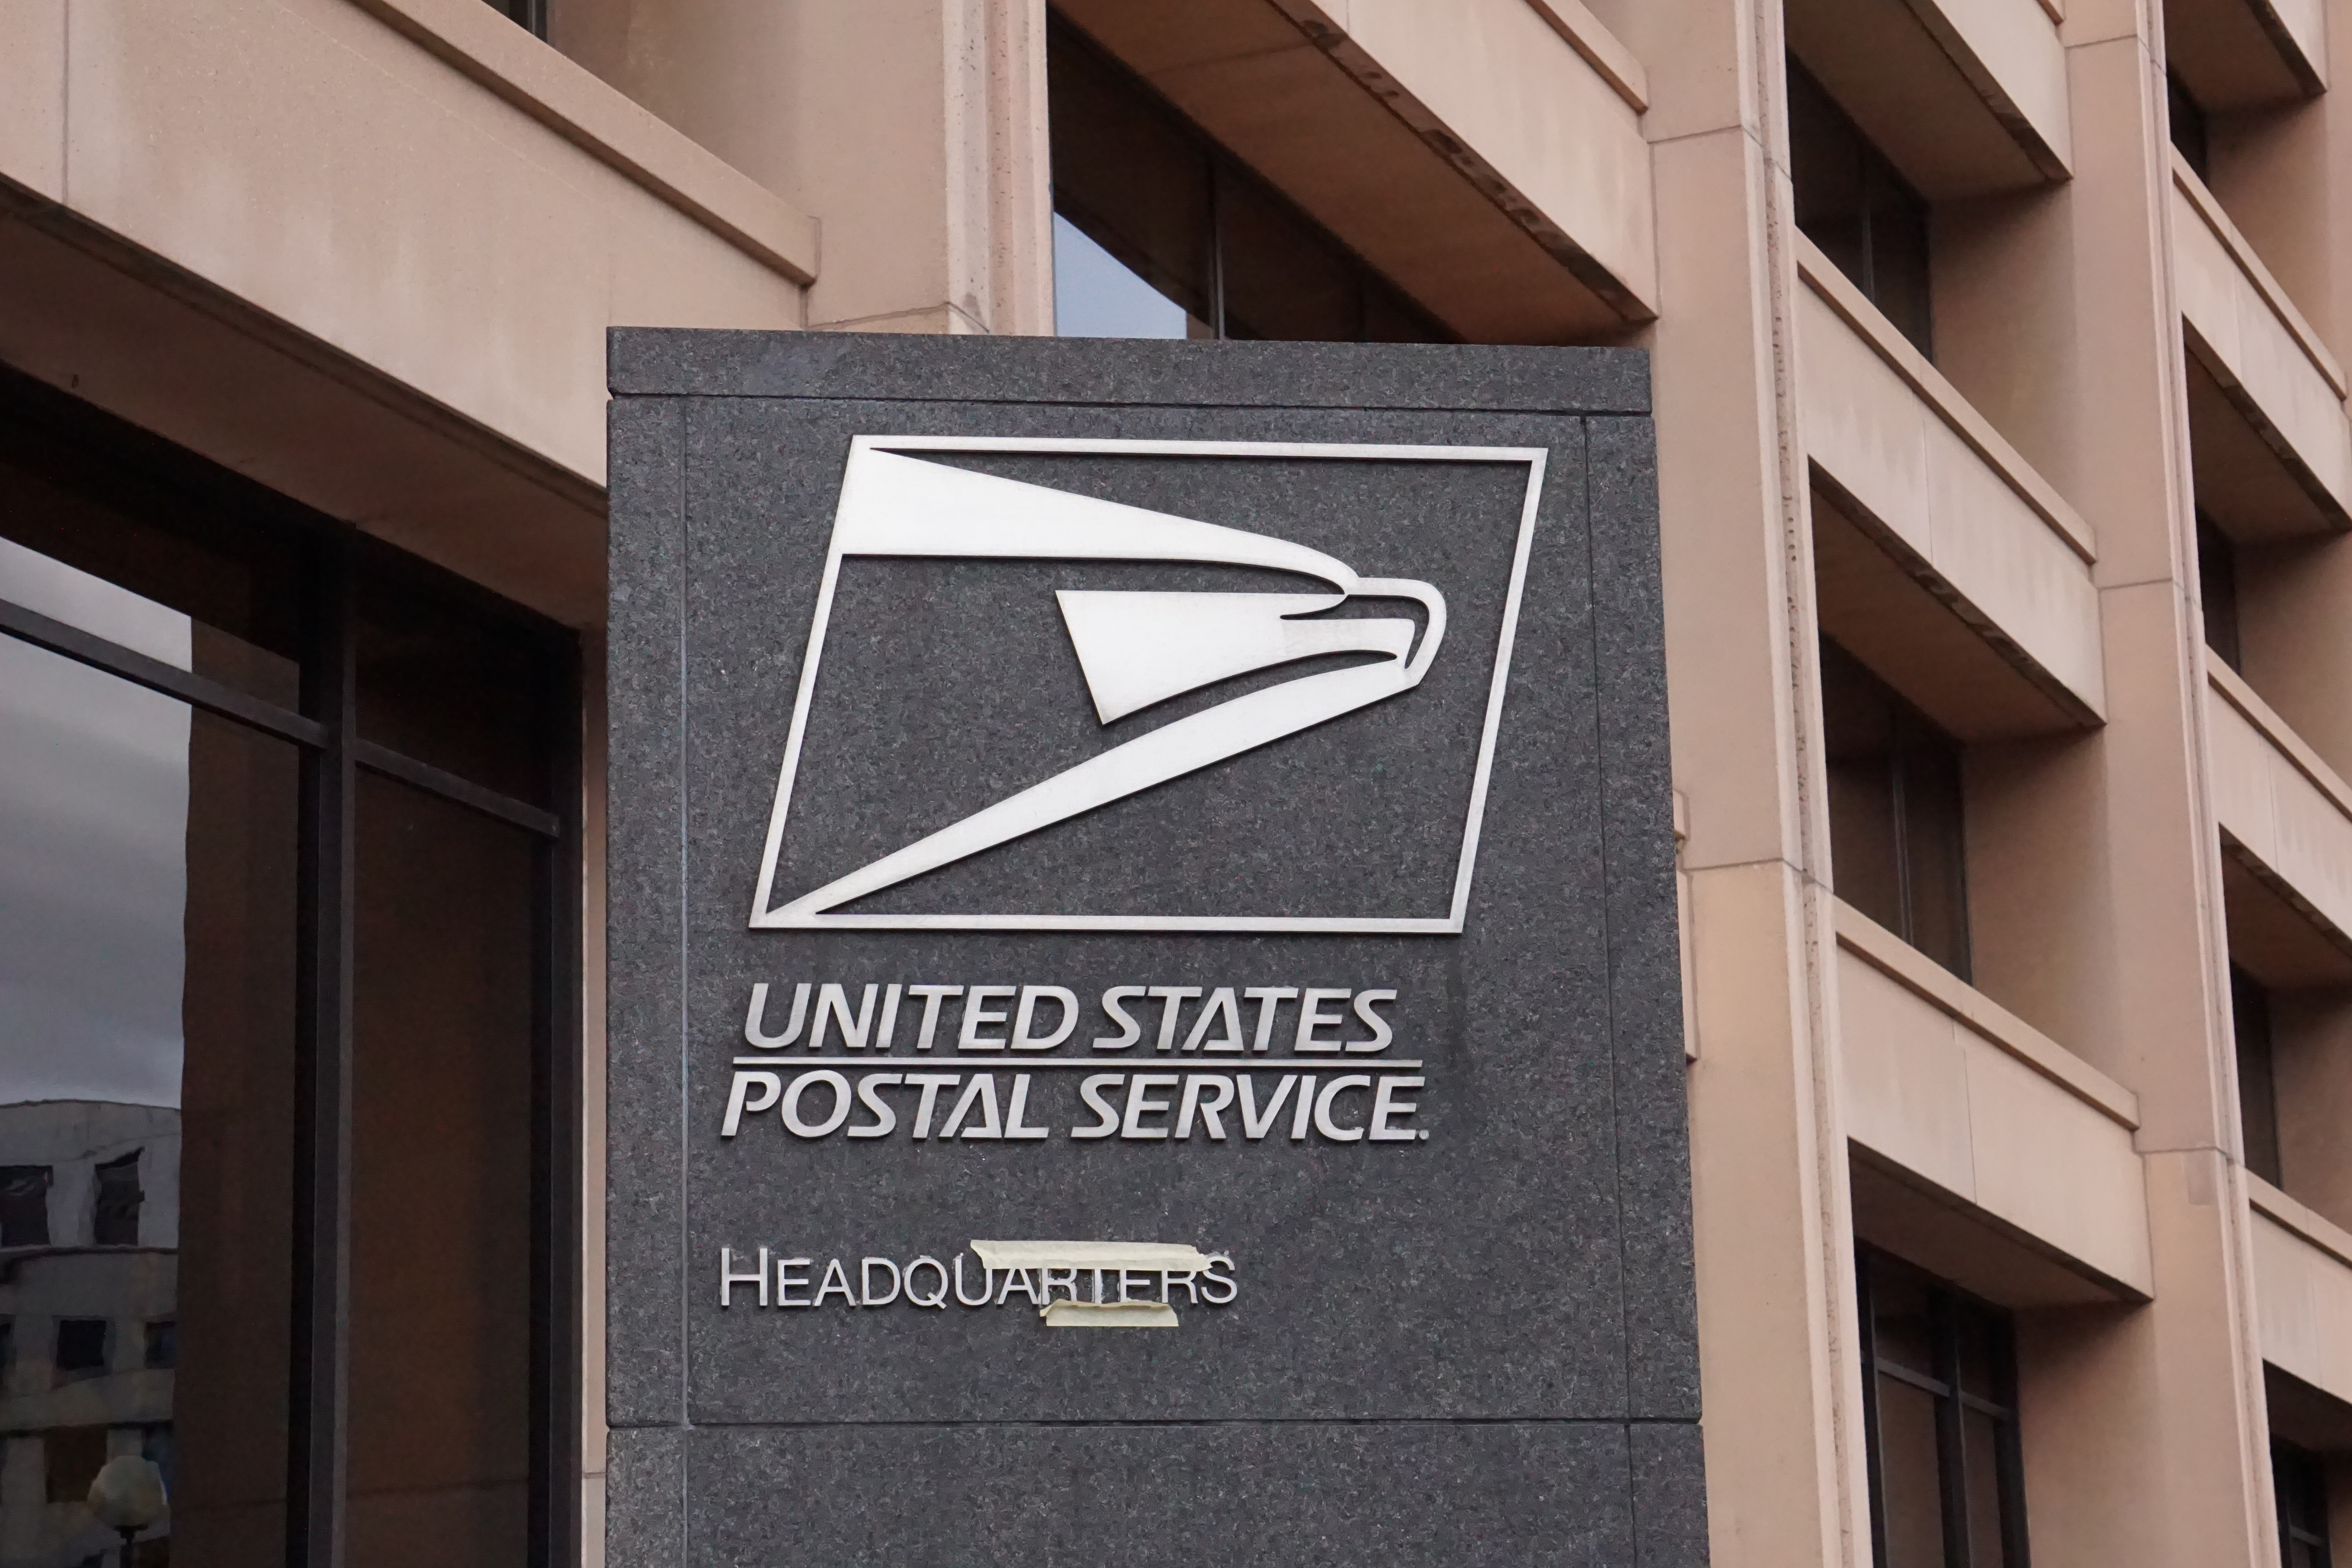 D C  post office problems: Residents tell Eleanor Holmes